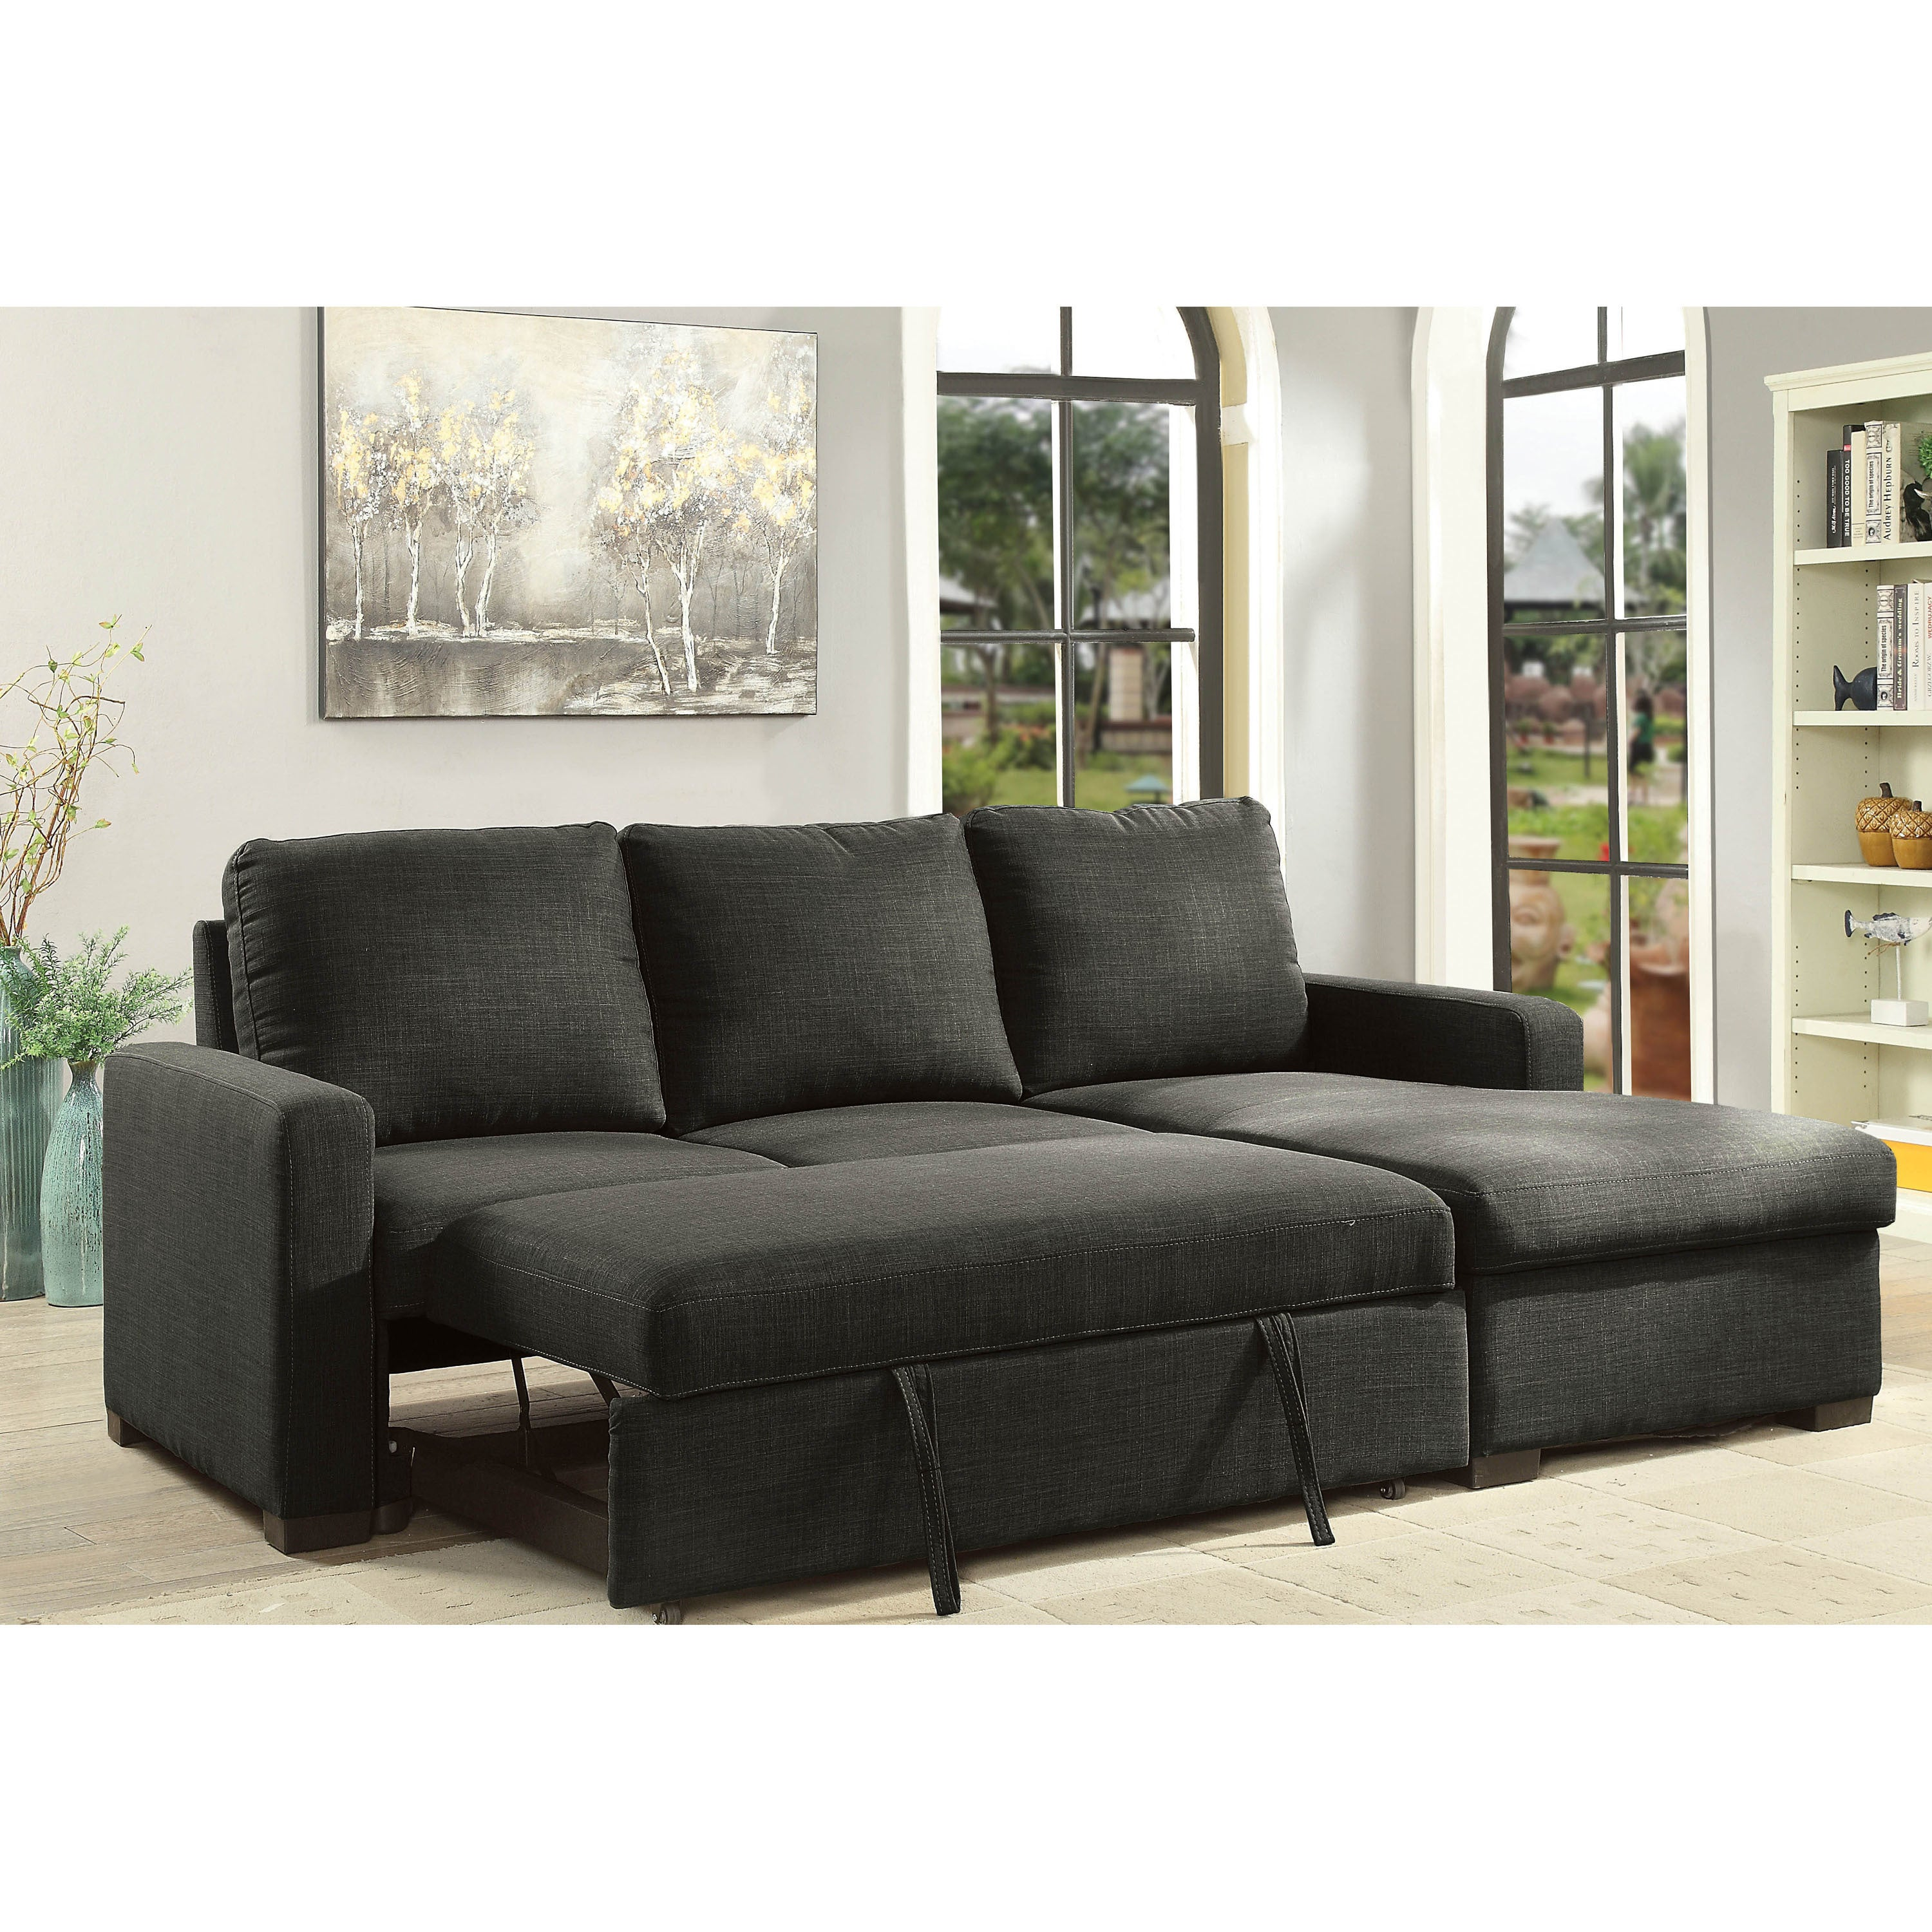 go sofa couch rooms beds trundle sectional bed king the finding ikea loveseat perfect small twin furniture chaise sleeper to red with